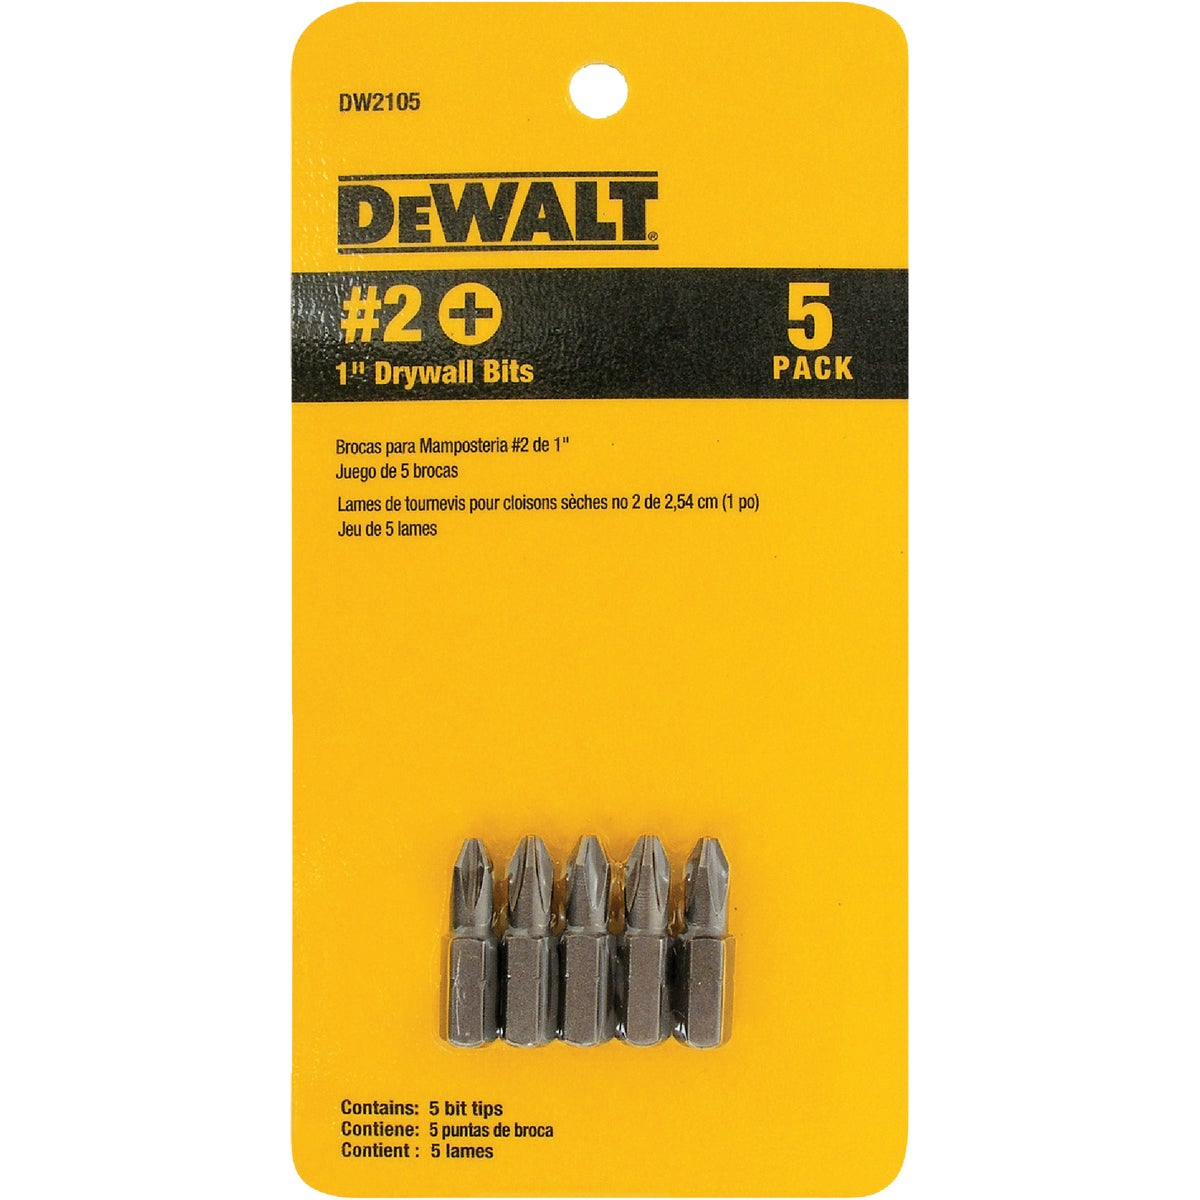 5PC DRYWALL BIT SET - DW2105 by DeWalt